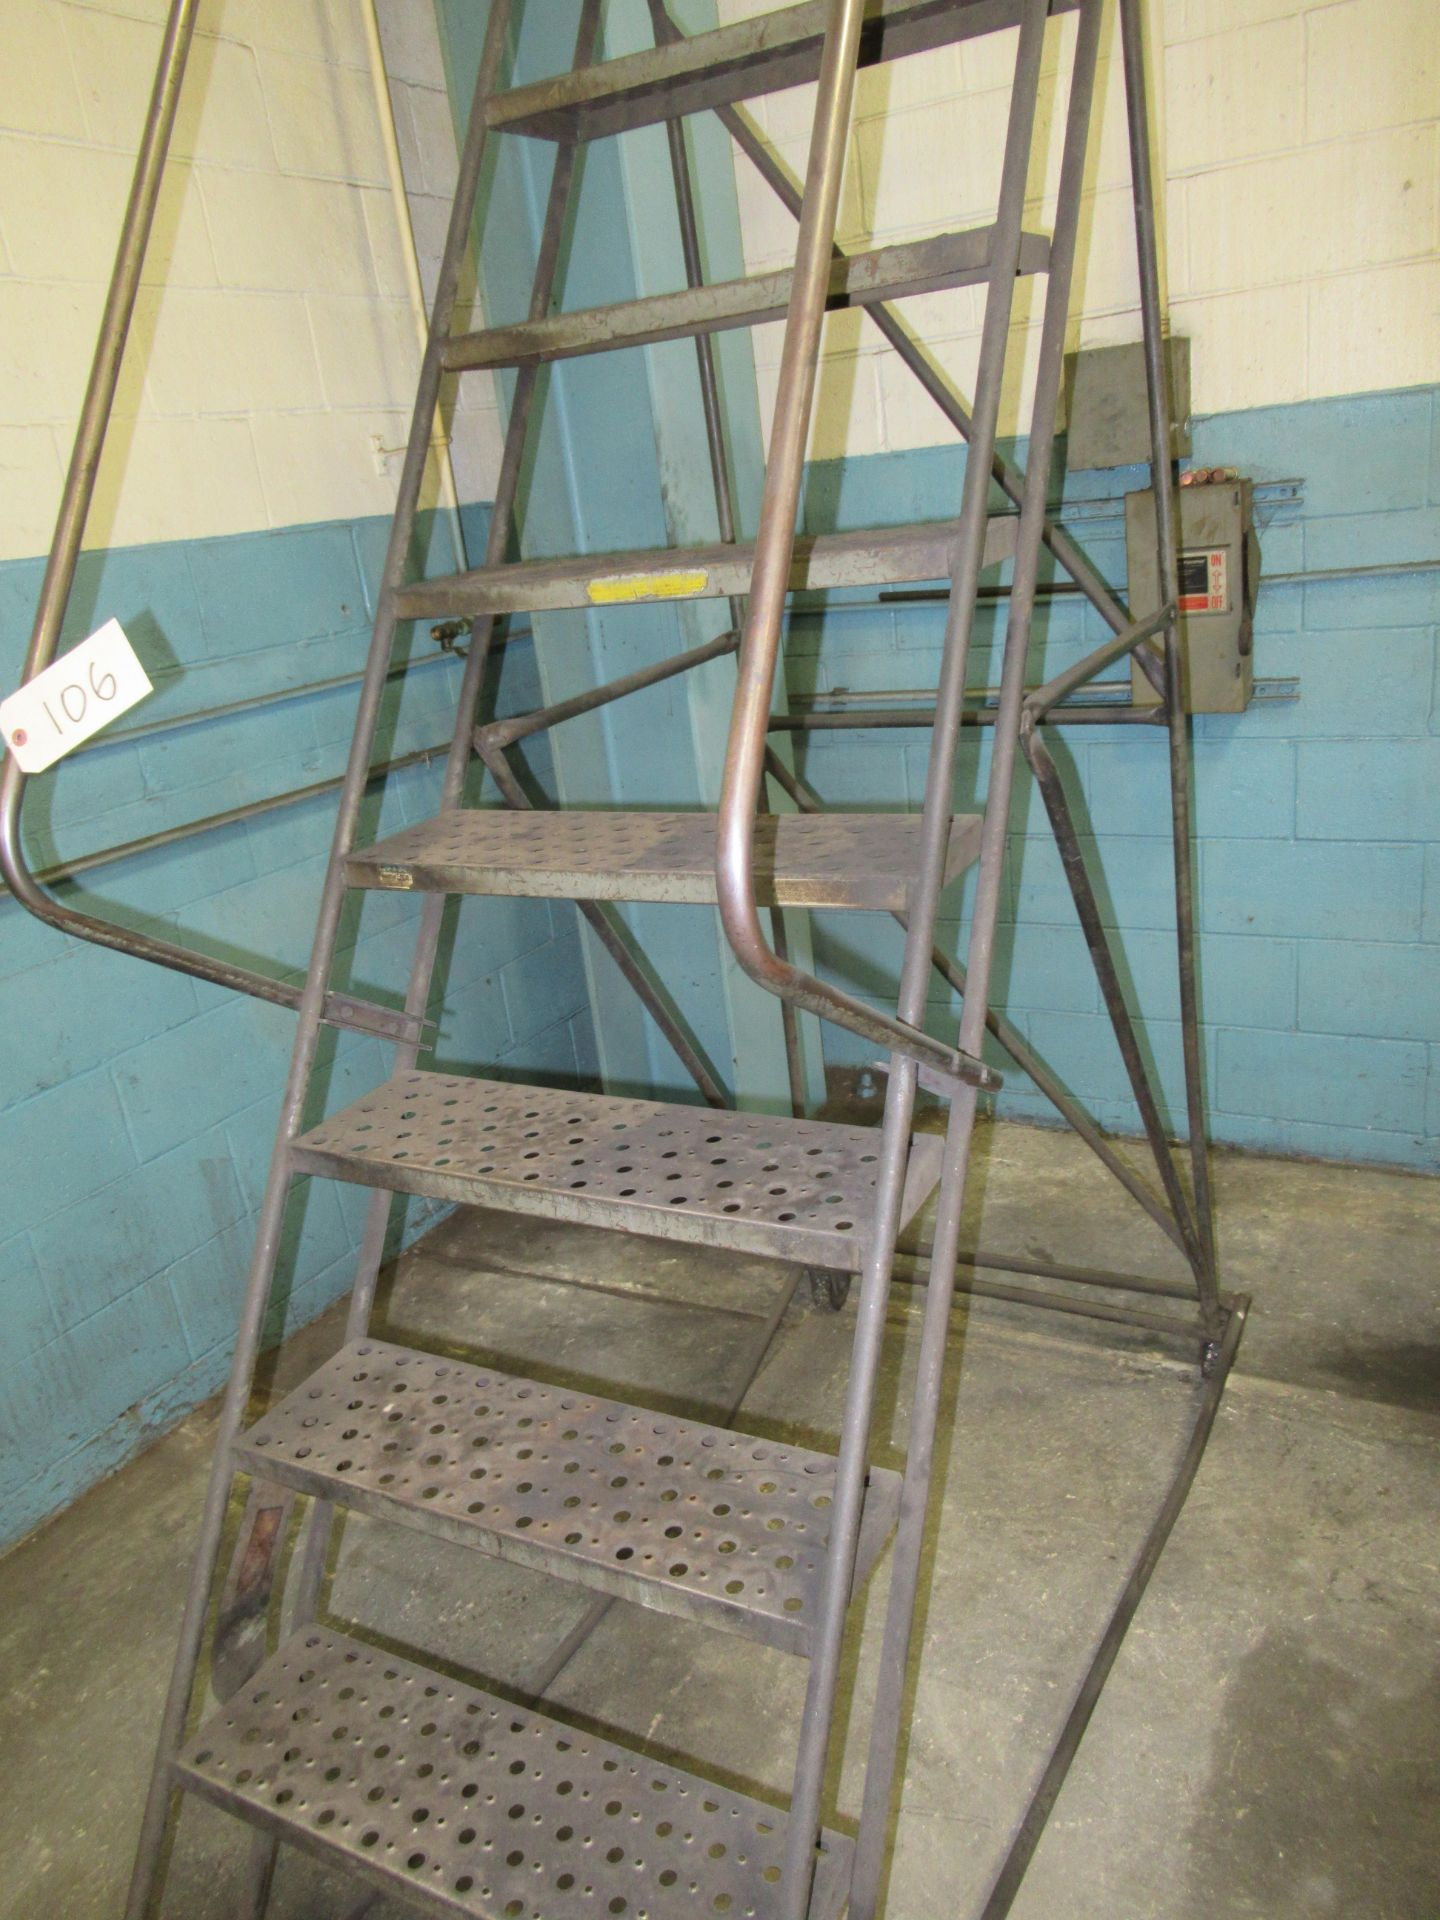 (2) ROLLING STEPS LADDERS - Image 2 of 3